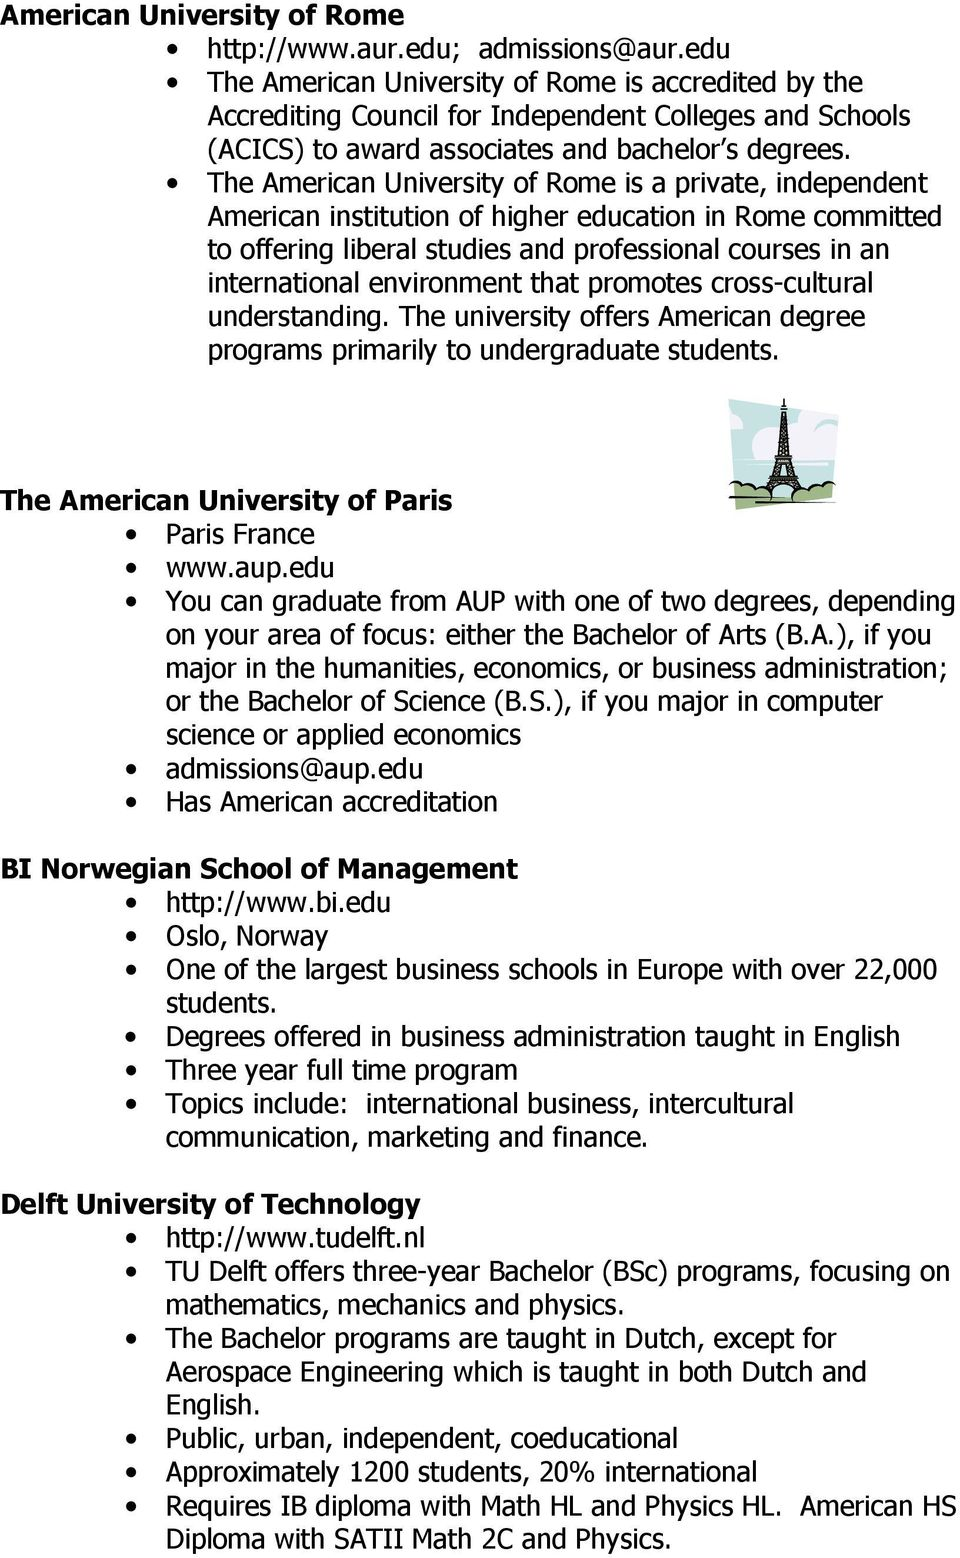 The American University of Rome is a private, independent American institution of higher education in Rome committed to offering liberal studies and professional courses in an international